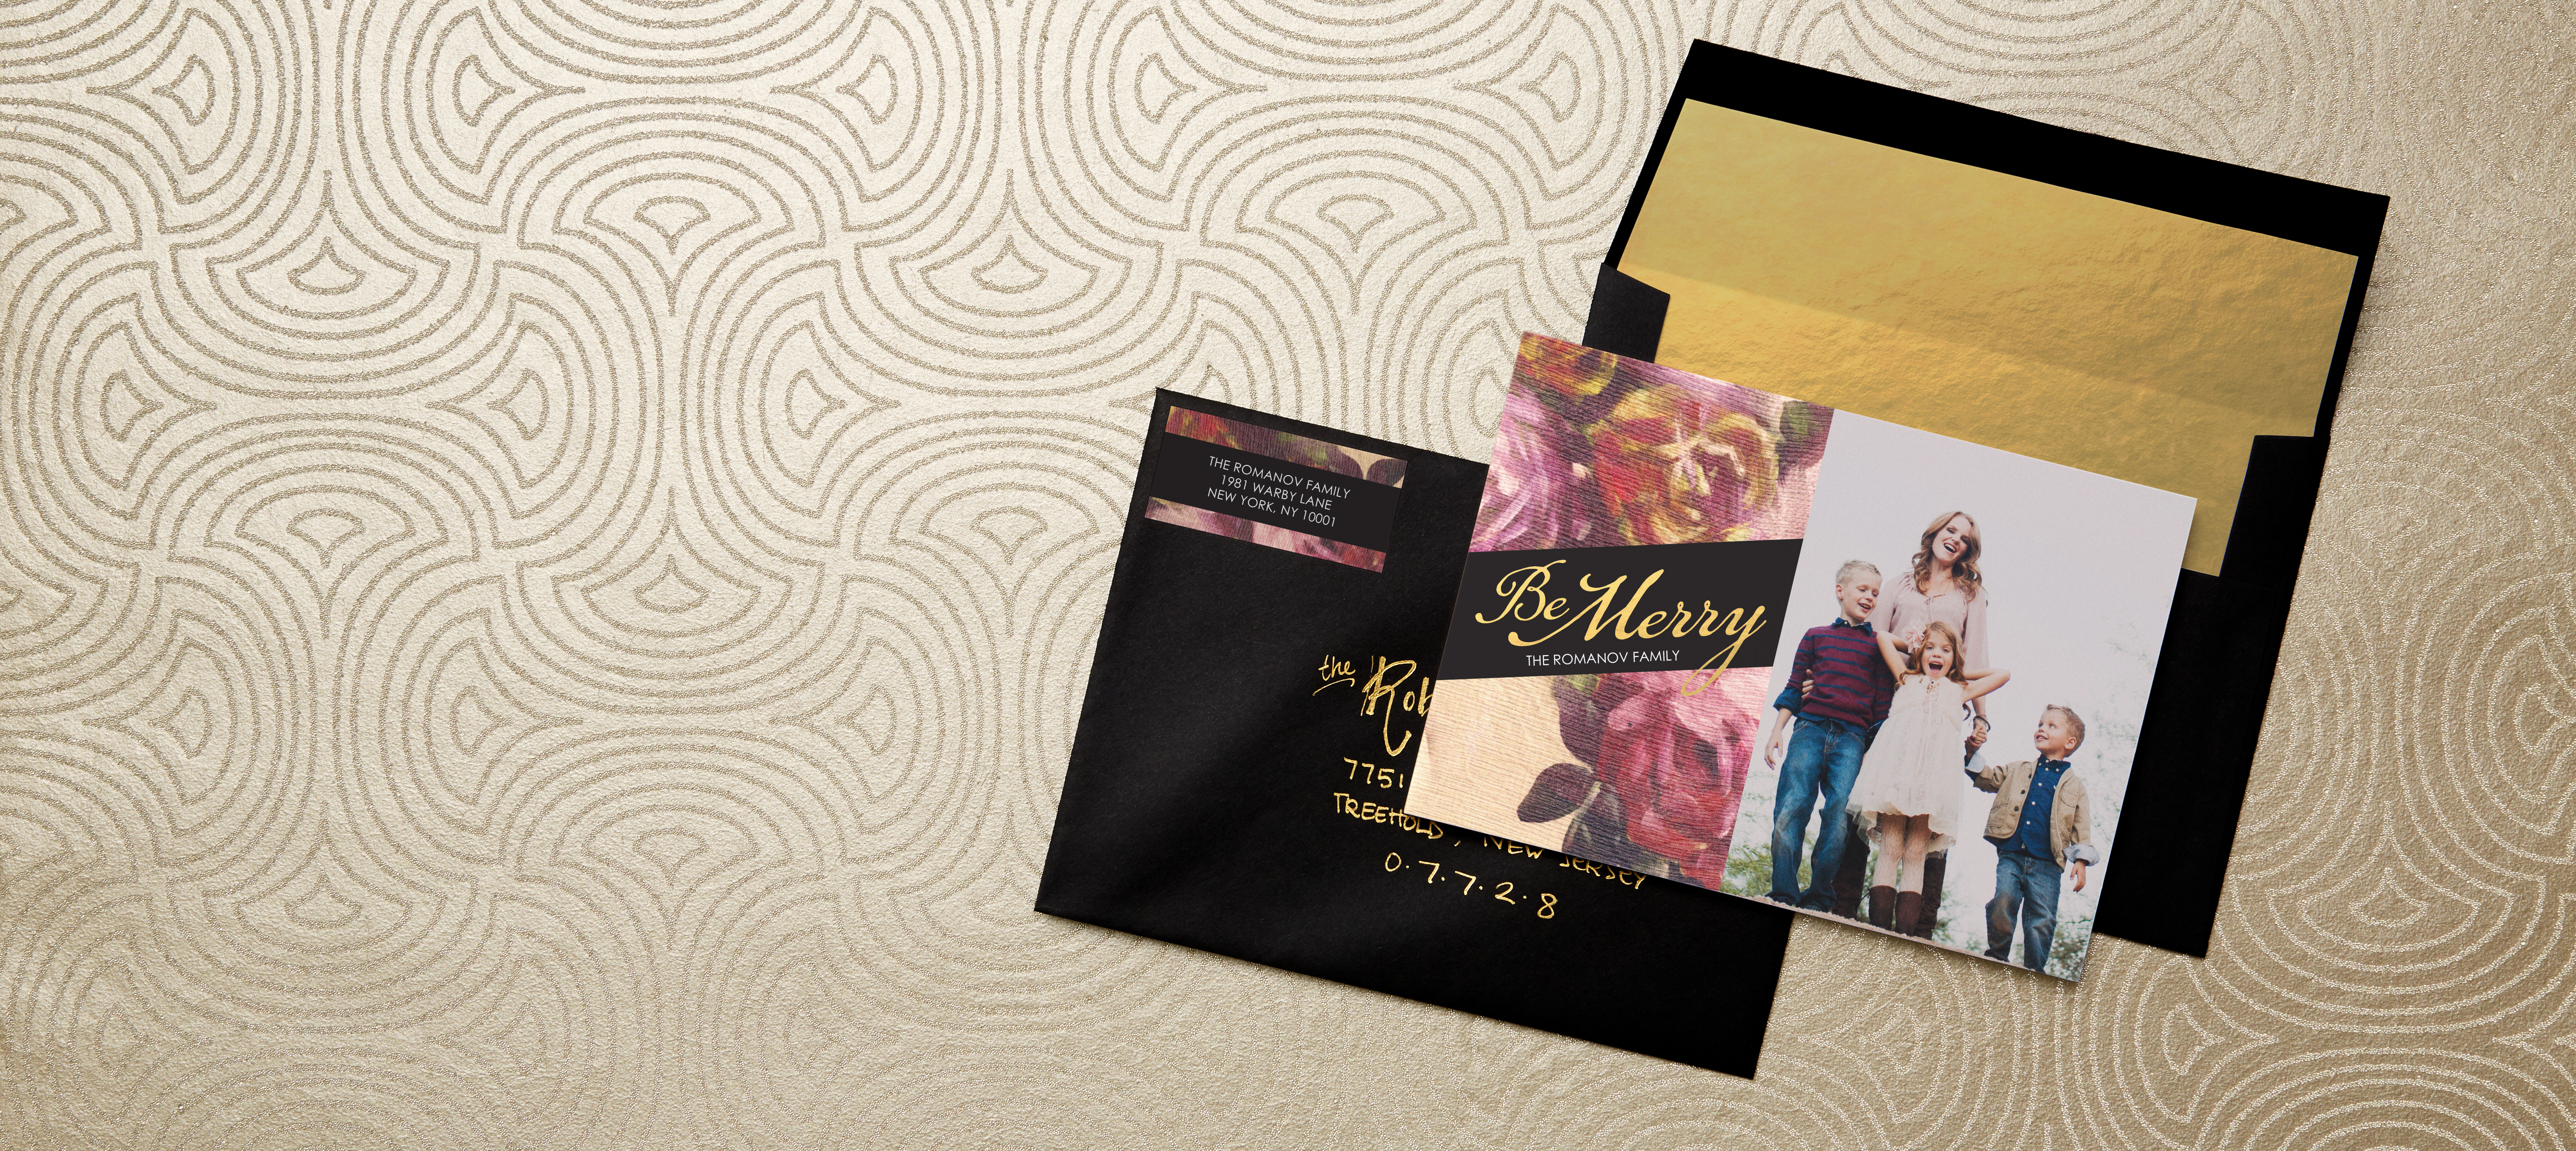 tiny prints and marchesa introduce glamorous new holiday card